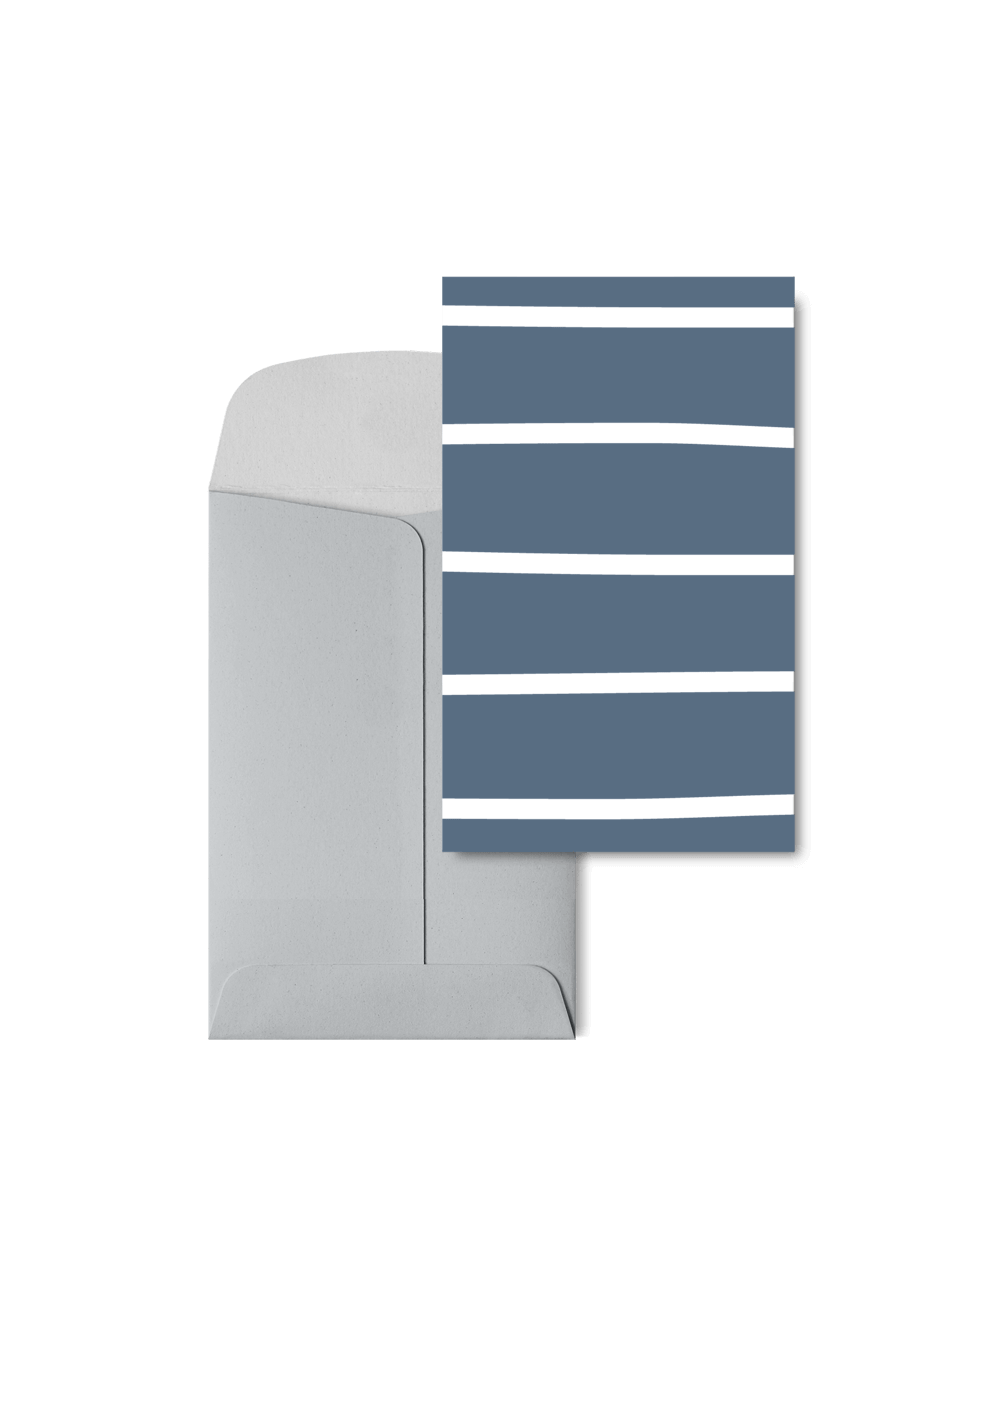 Stripetown Navy, 6 Karten Set by Karten Design Fabrik. Supplier of designer Greeting Cards, Gift Wrap, Christmas Cards & Invitations to leading design stores including Connox, Modulor, Magazin & Manufactum.